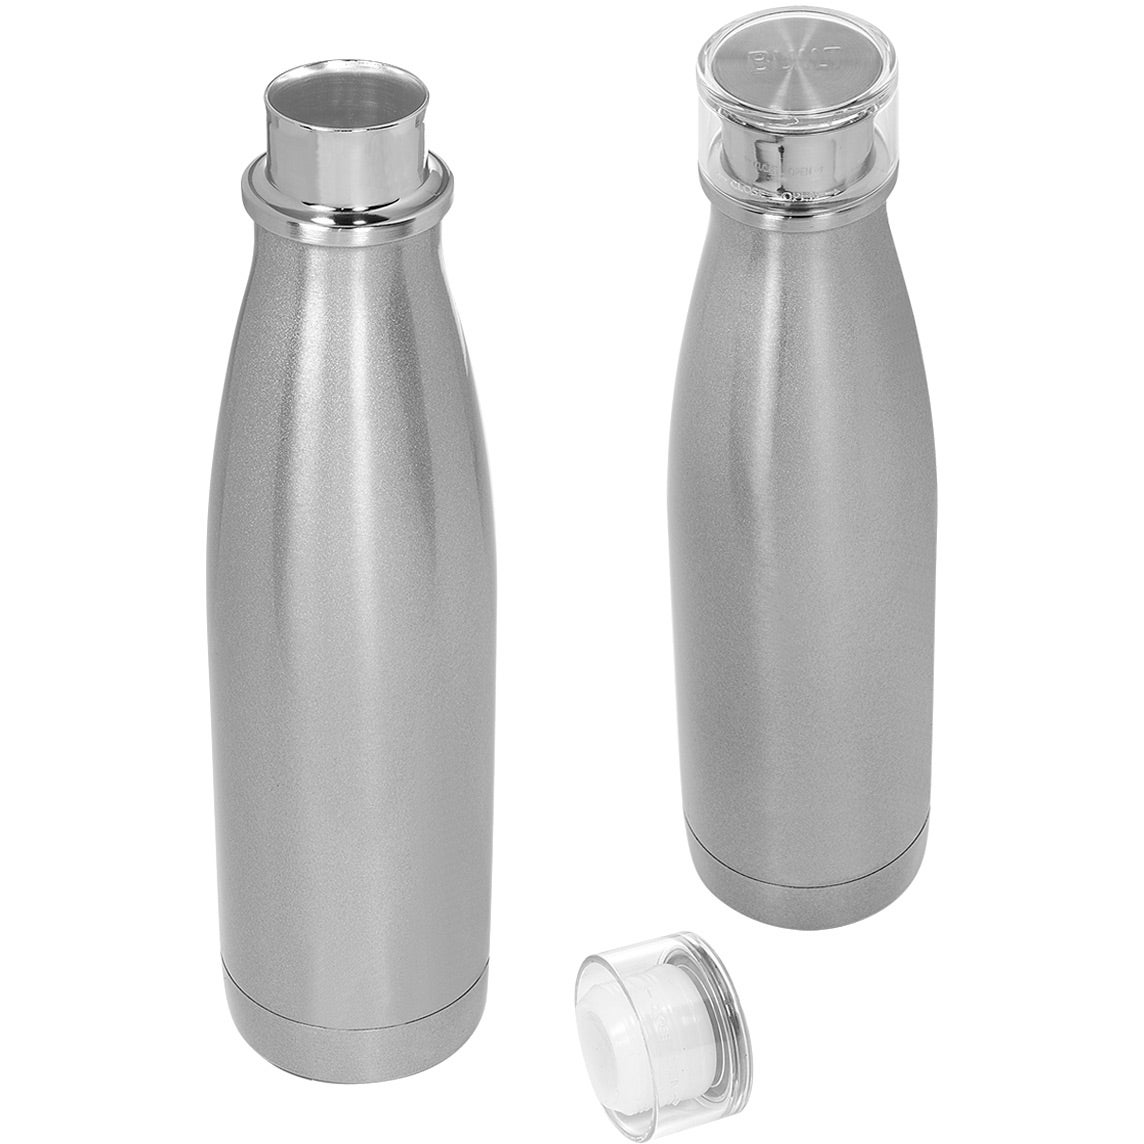 e597ec69b3 CLICK HERE to Order 17 Oz. Built Perfect Seal Vacuum Insulated Bottles  Printed with Your Logo for $18.74 Ea.